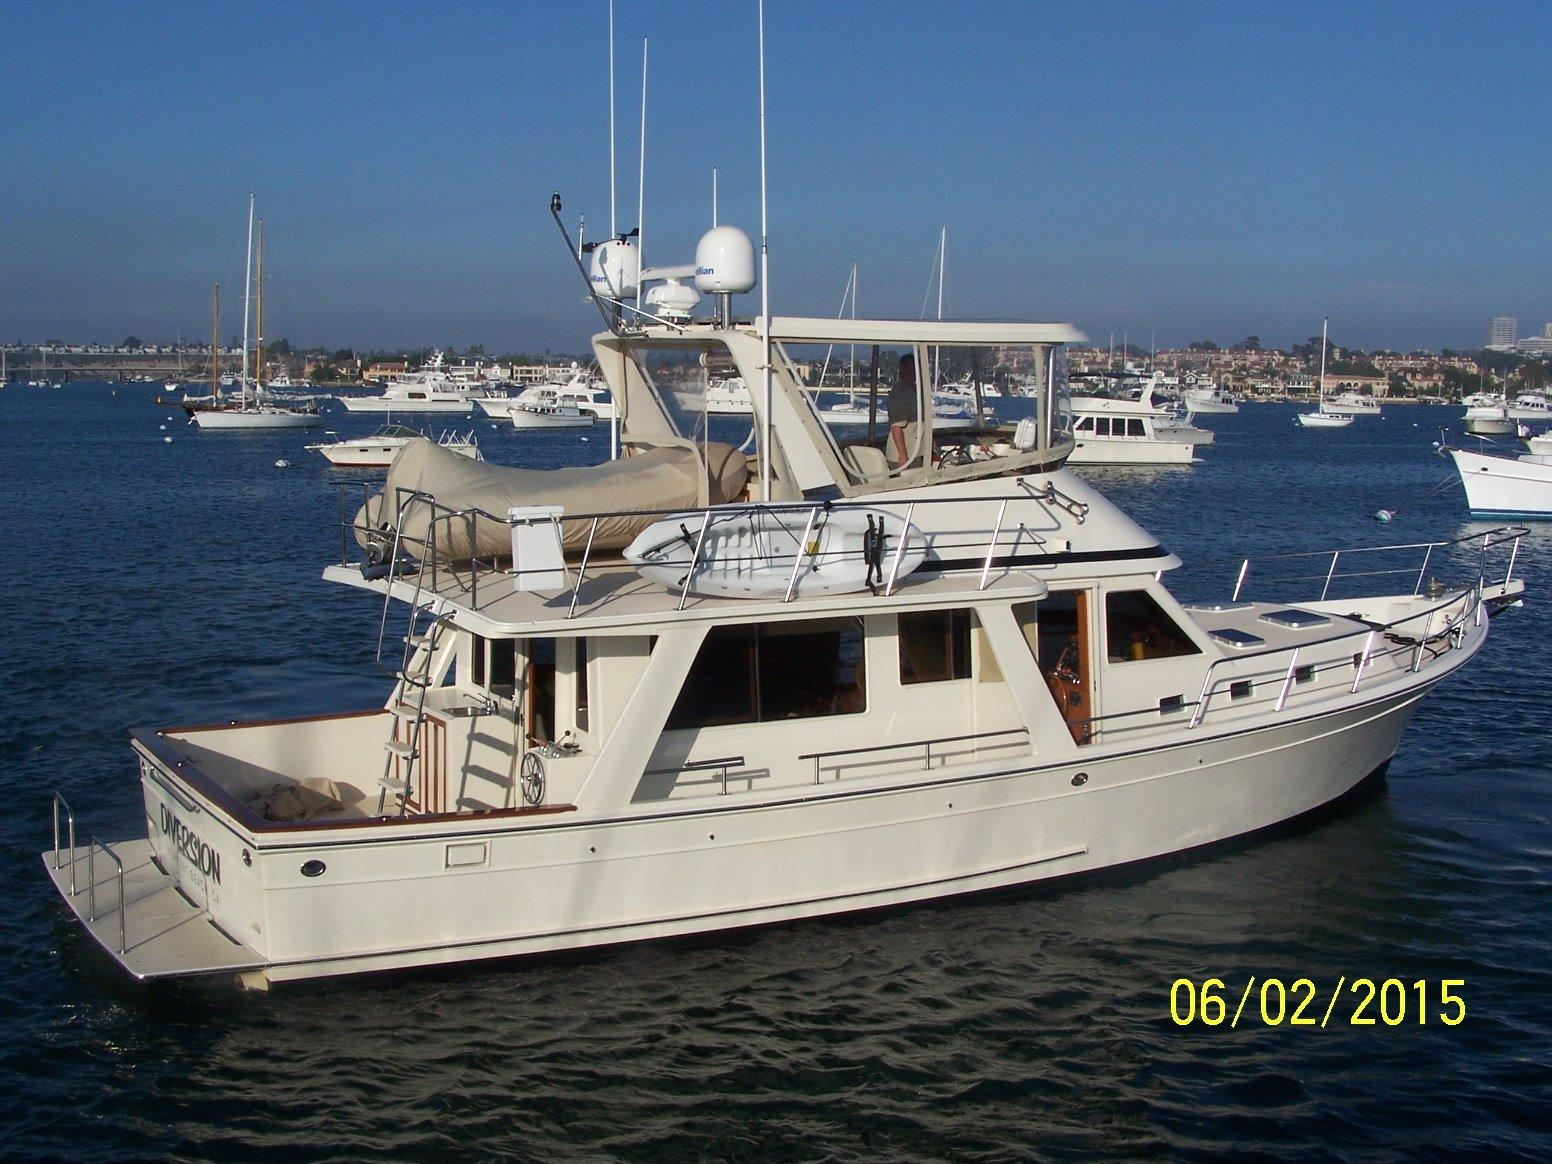 48 offshore 1997 for sale in newport beach  california  us